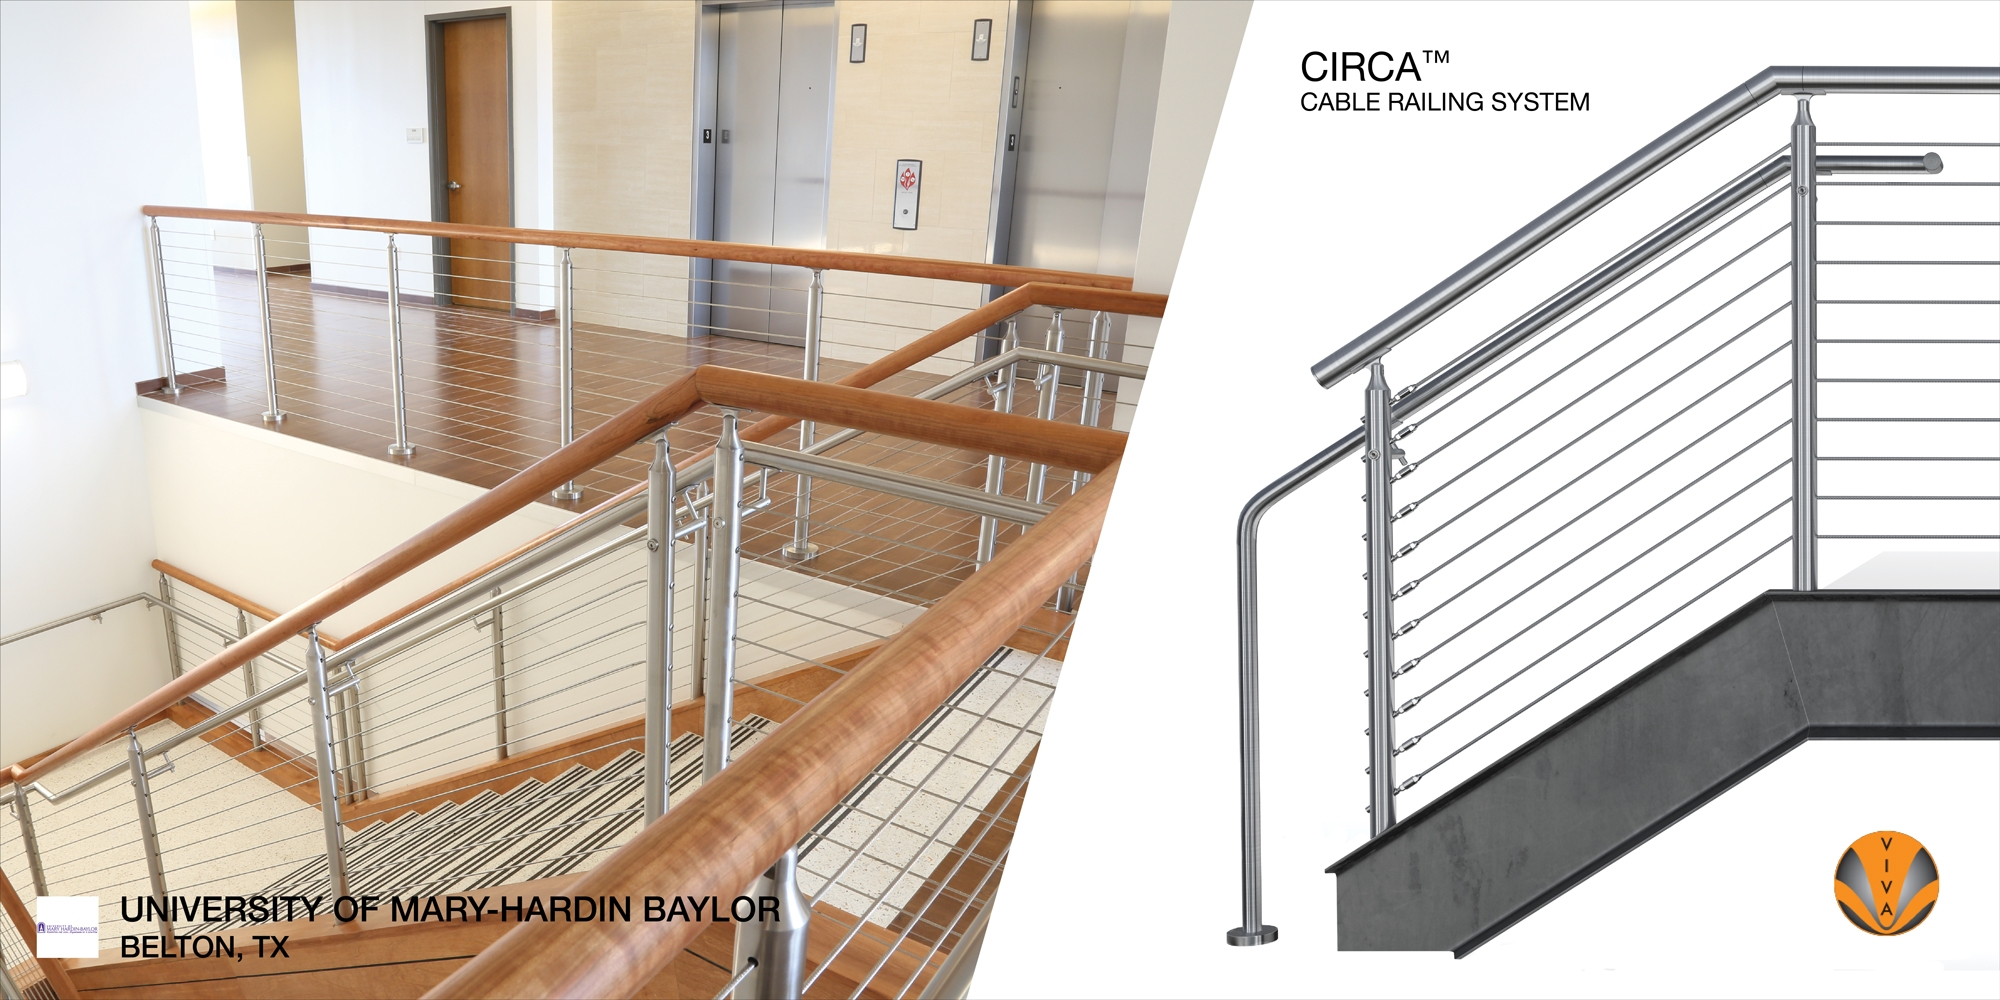 Cable Stair Railing System Circa™ University Of Mary Hardin Baylor | Wood And Cable Stair Railing | Dark | Diy | Exterior Irregular Stair | Residential | Forgings